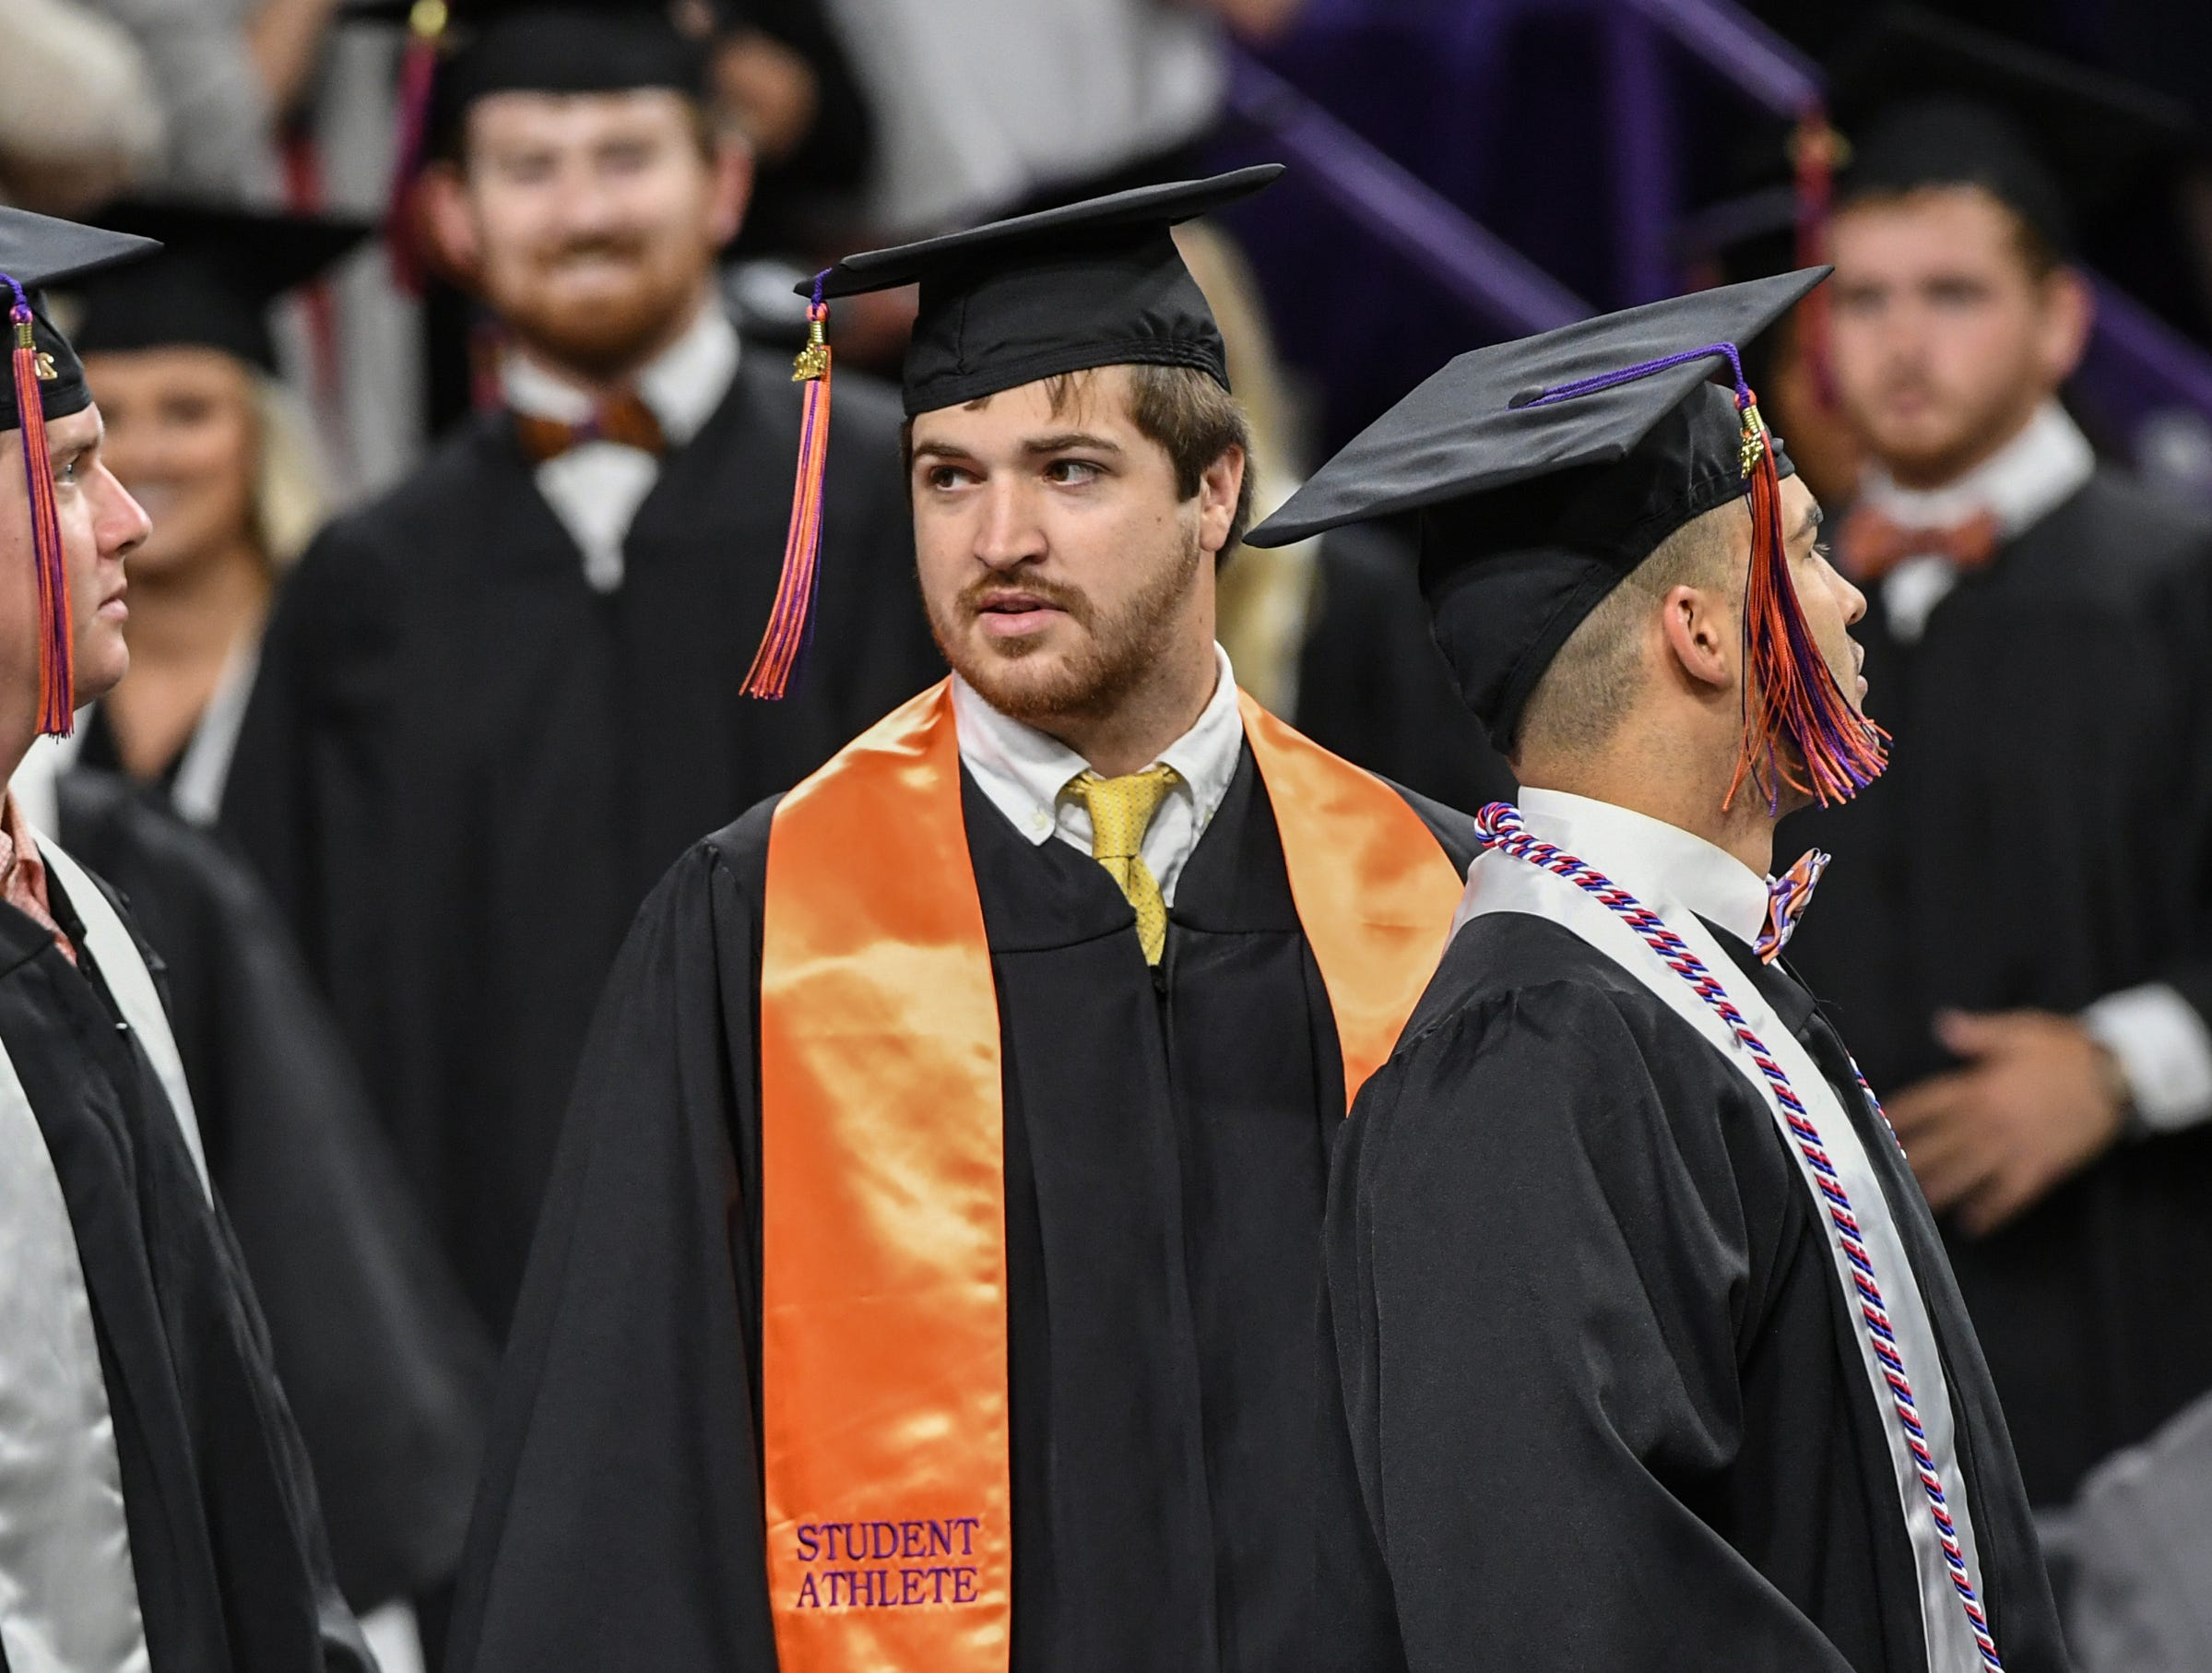 James Barnes of Sumter, who played as a backup at quarterback for the football team, during Clemson University commencement ceremonies in Littlejohn Coliseum in Clemson Friday, May 10, 2019.